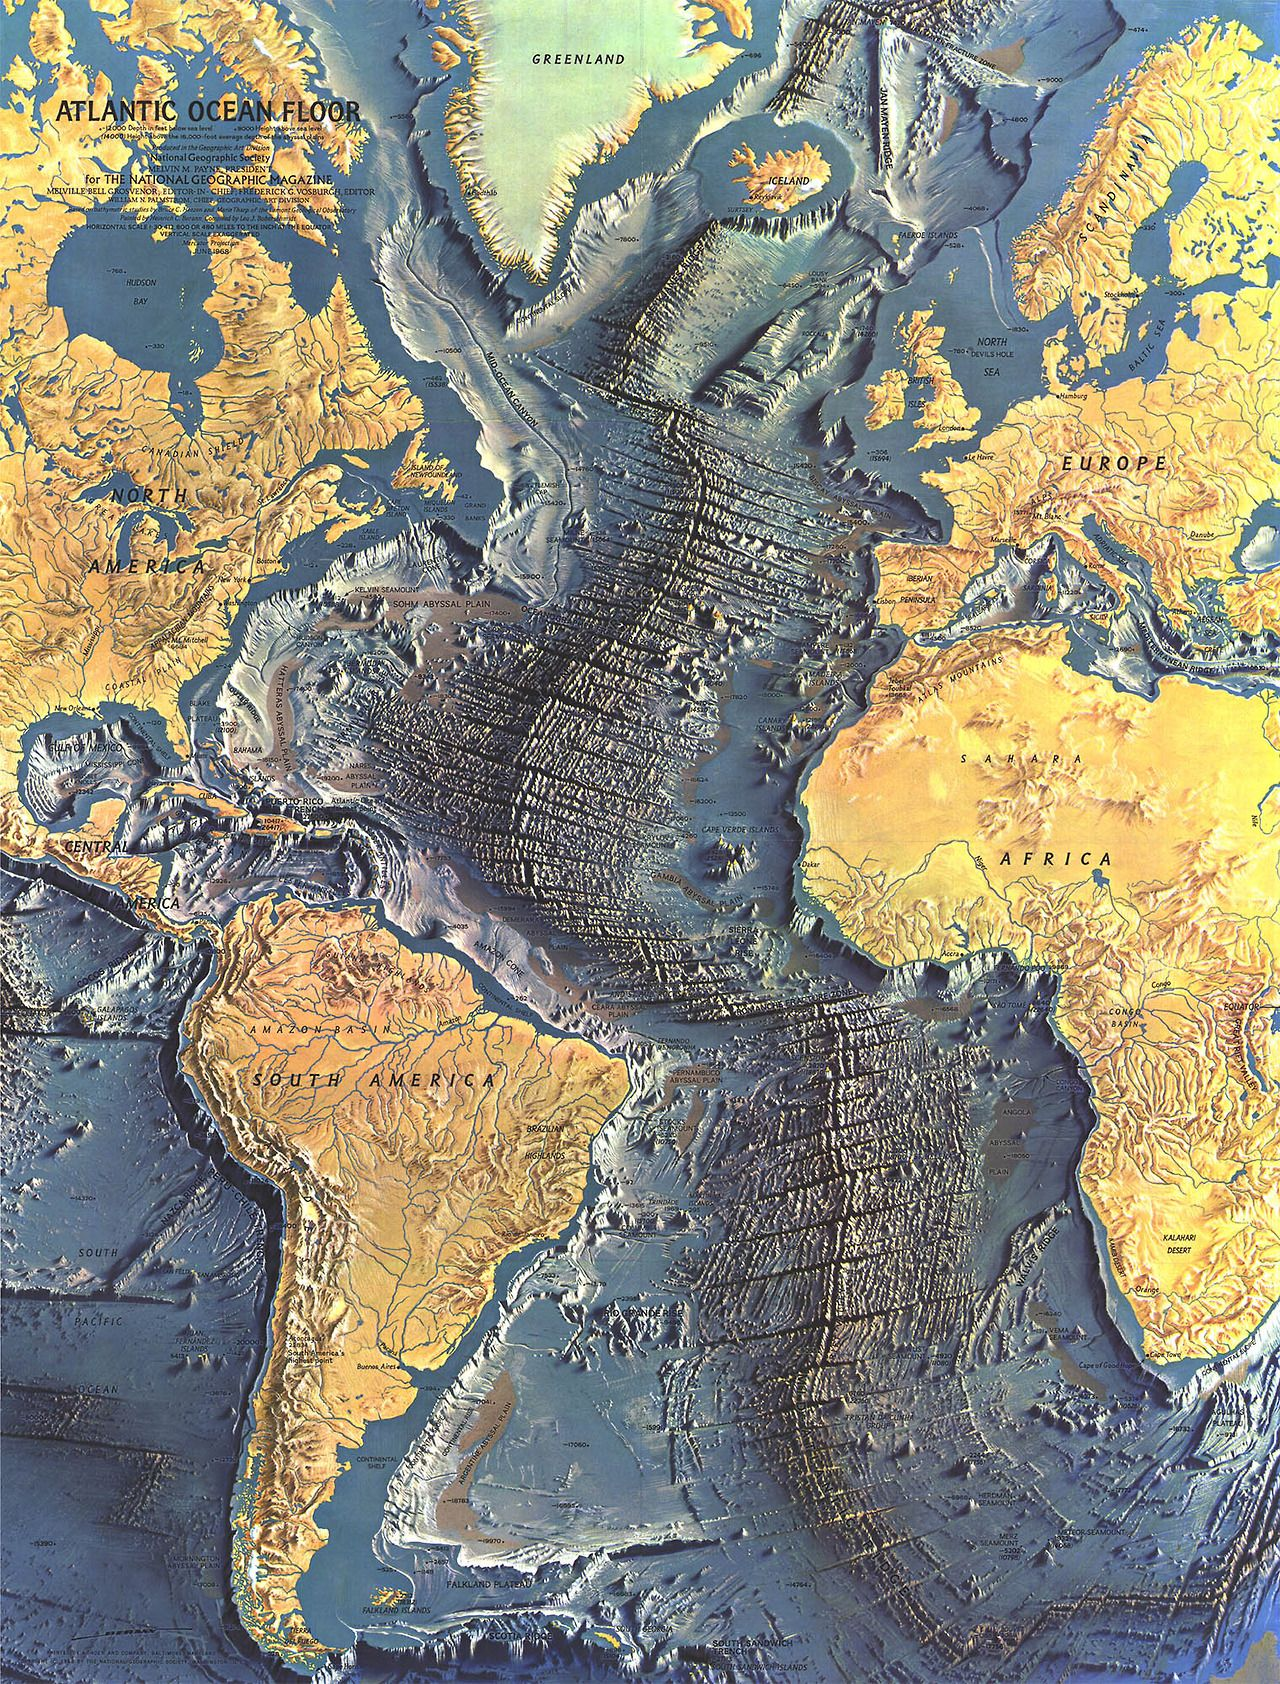 Beautiful Topography Map Of The Atlantic Sea Floor The Mid Atlantic